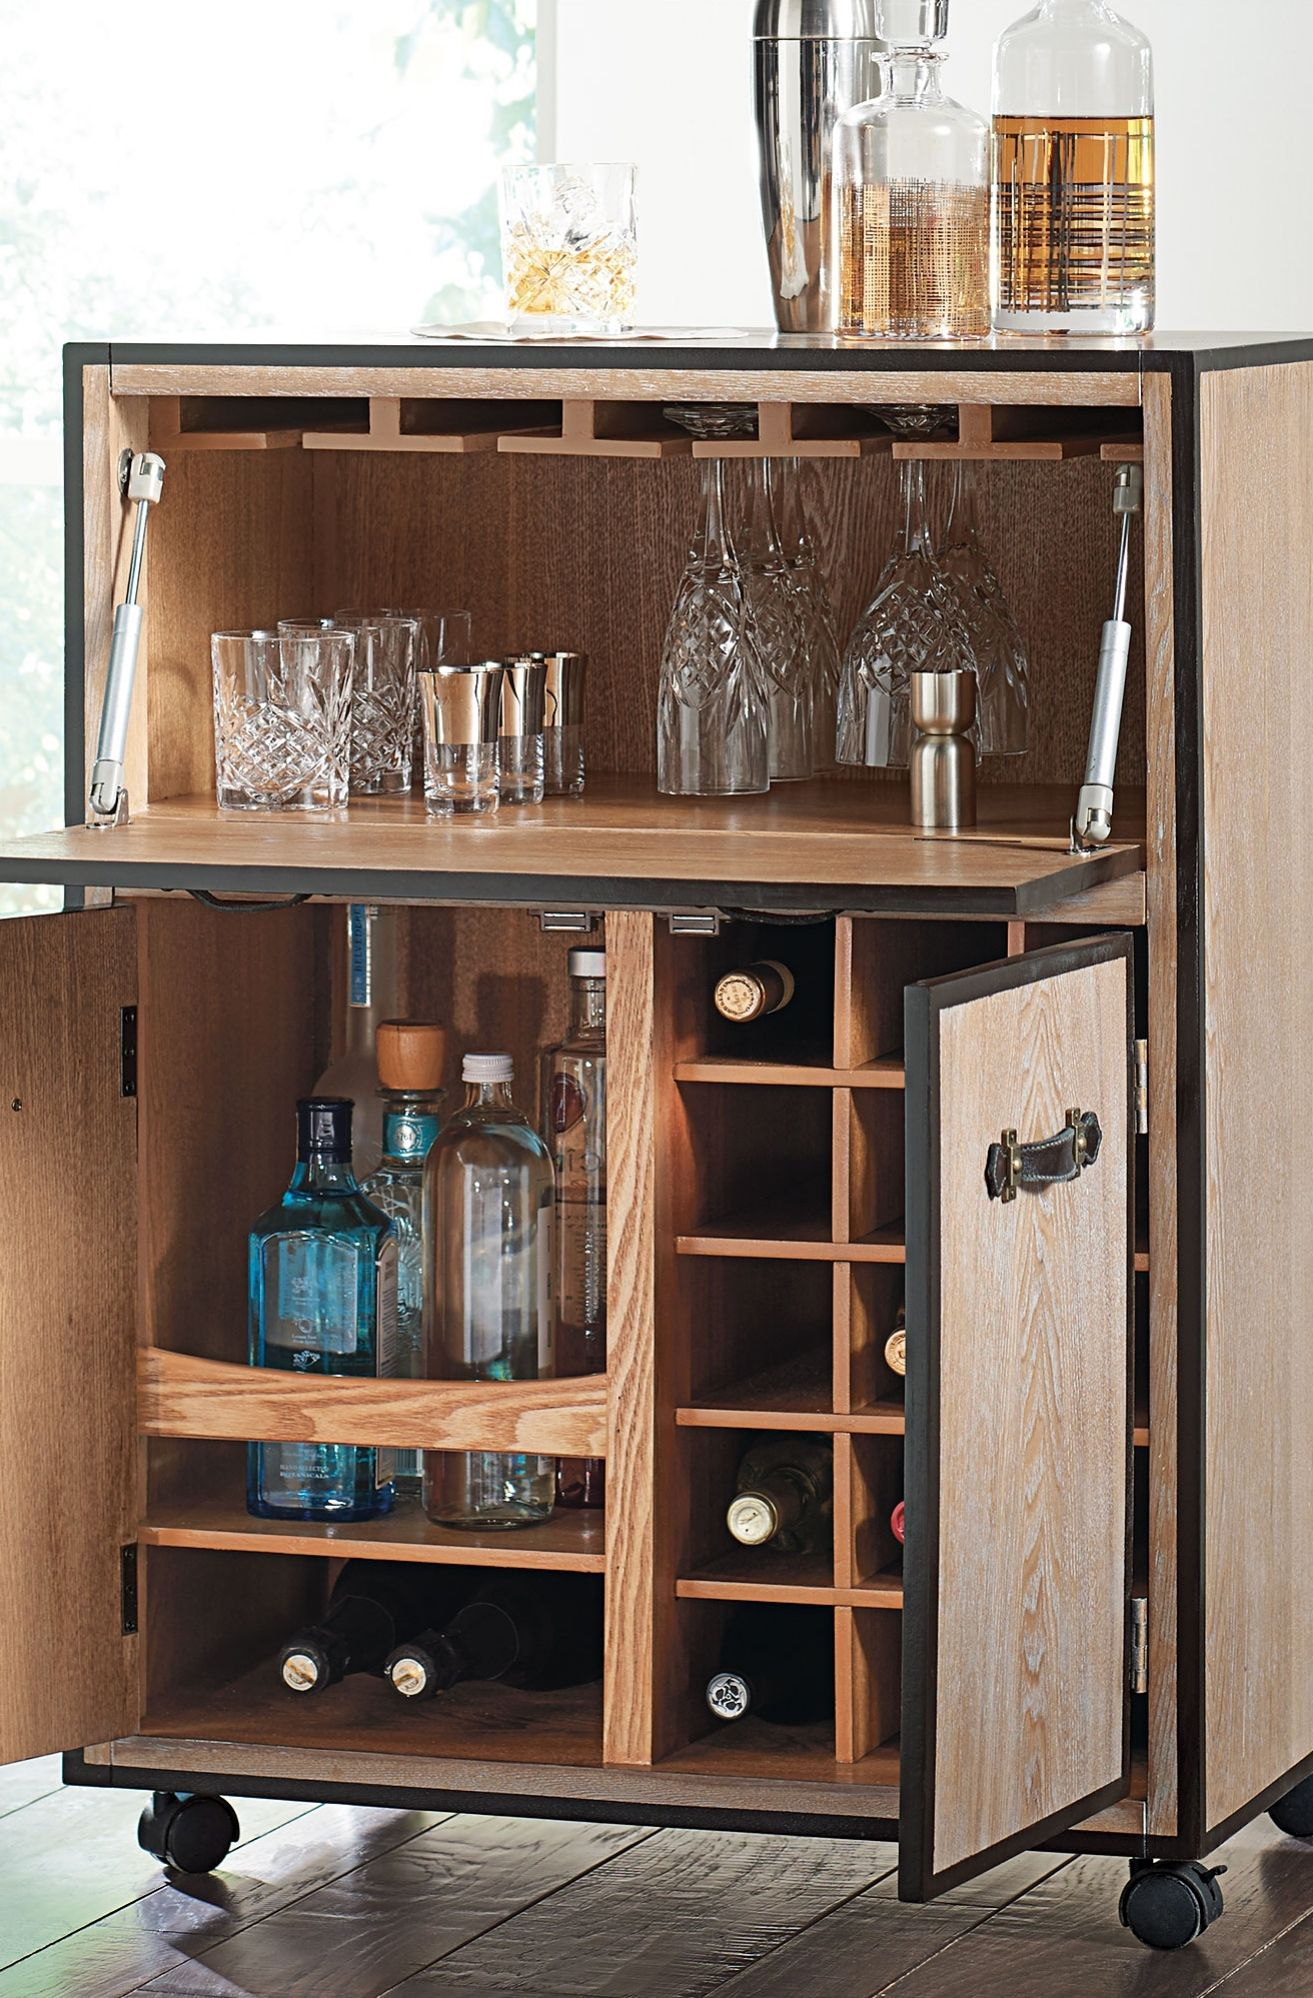 Move The Party From Room To With Our Portable Galway Mobile Bar Cart Wine Furniturefurniture